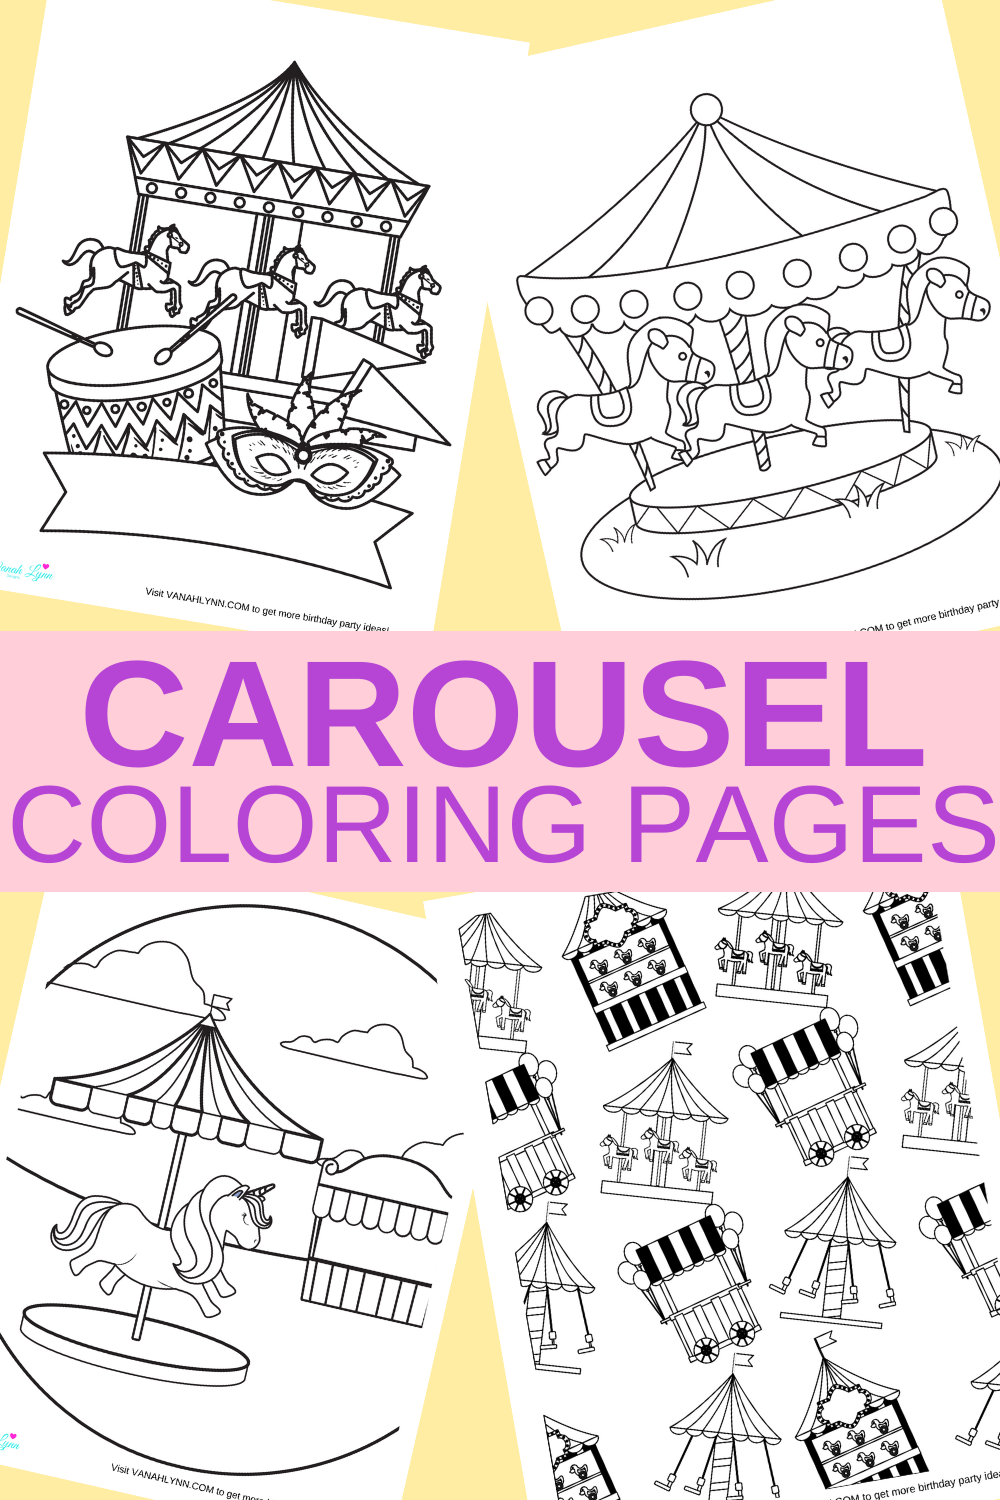 free download carousel coloring pages for a birthday party